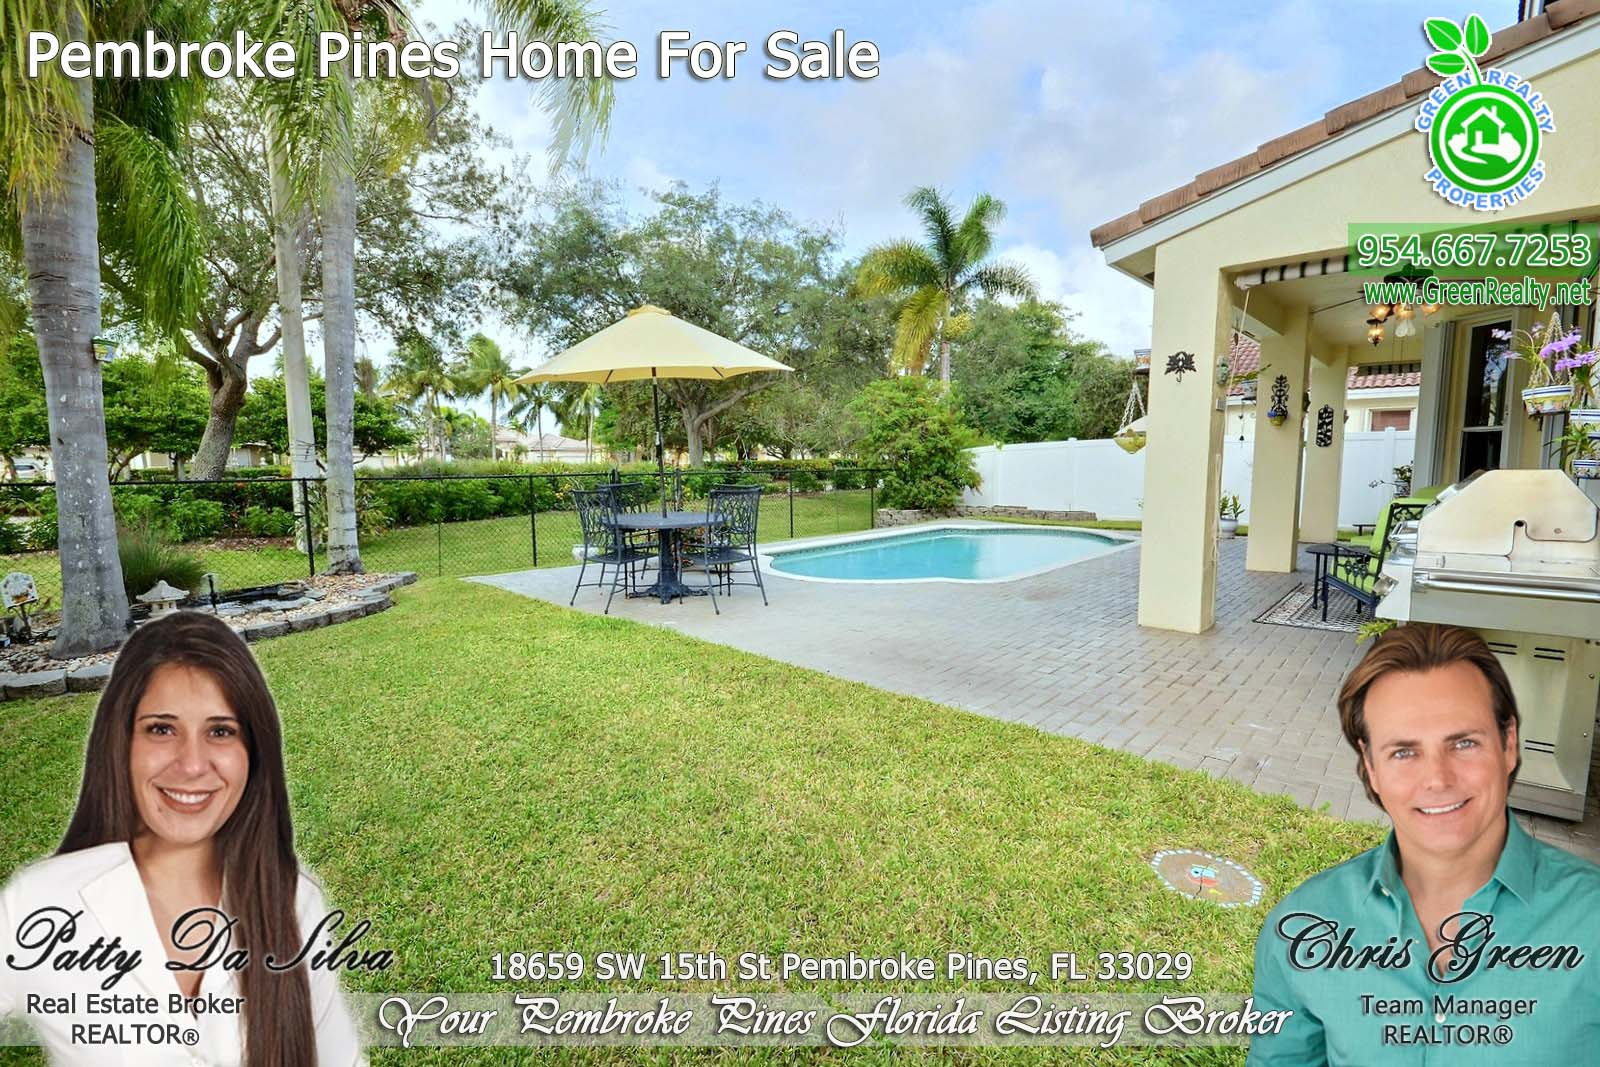 45 Pembroke Pines Homes For Sale (5)